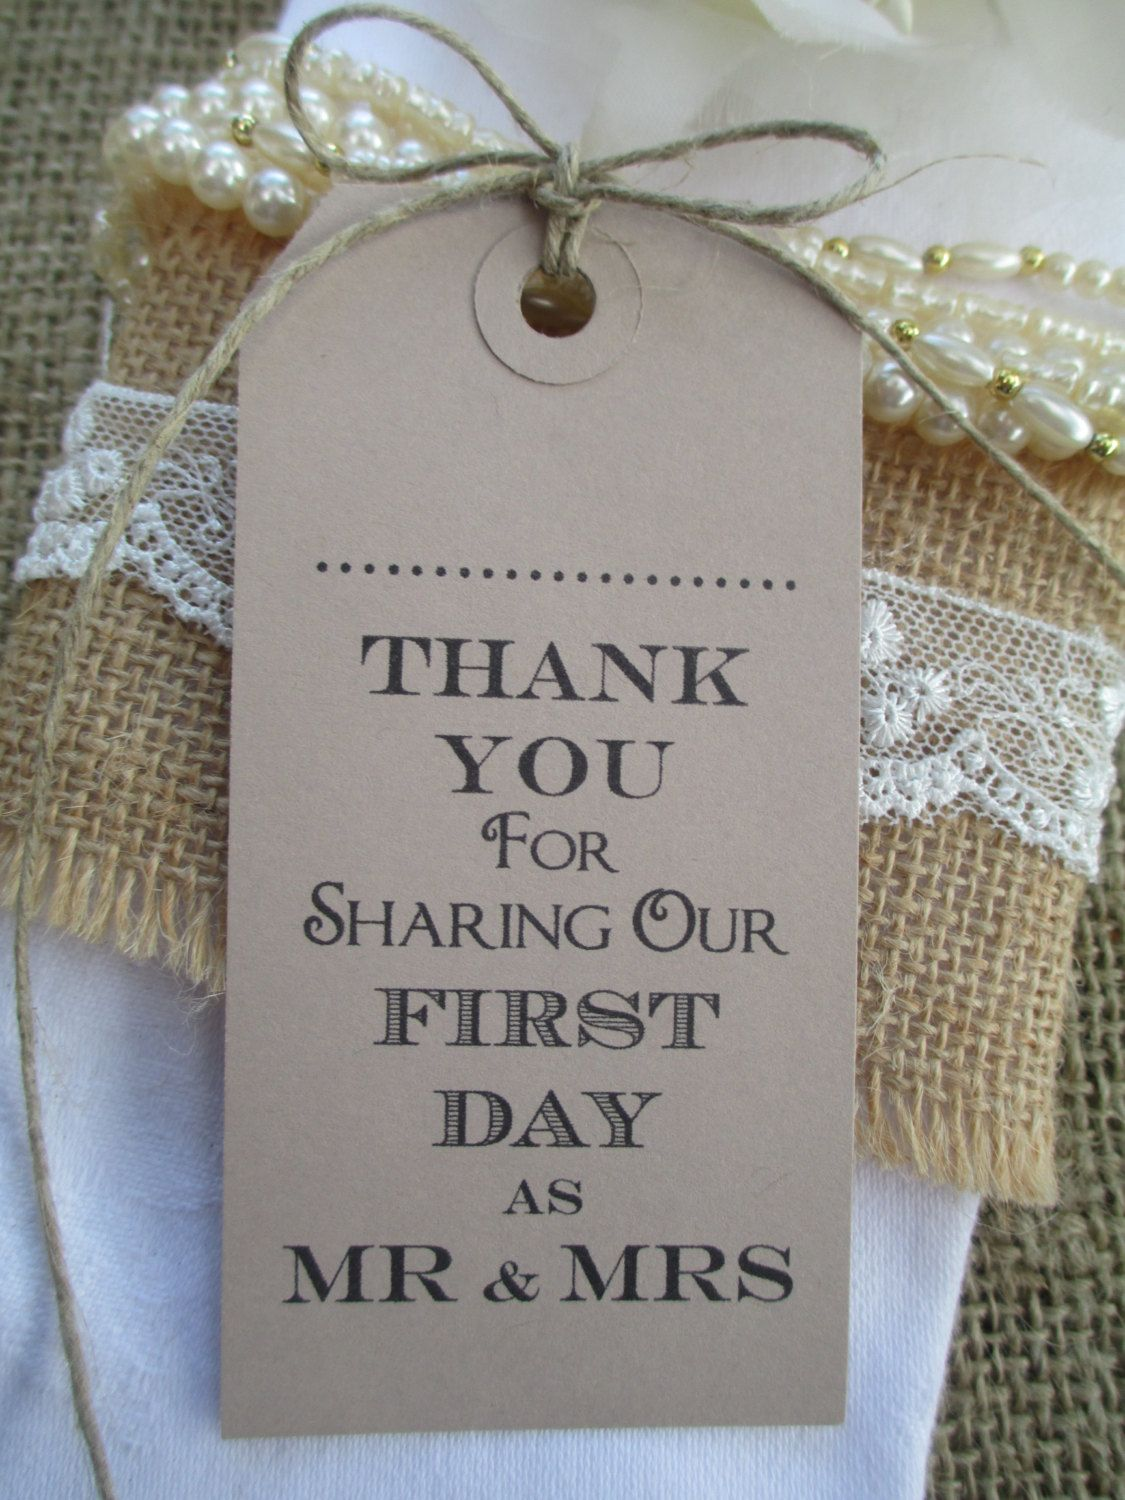 100 Wedding Napkin Ties Wedding Name Place Tags Table Decor Tags Thank You For Sharing Our First